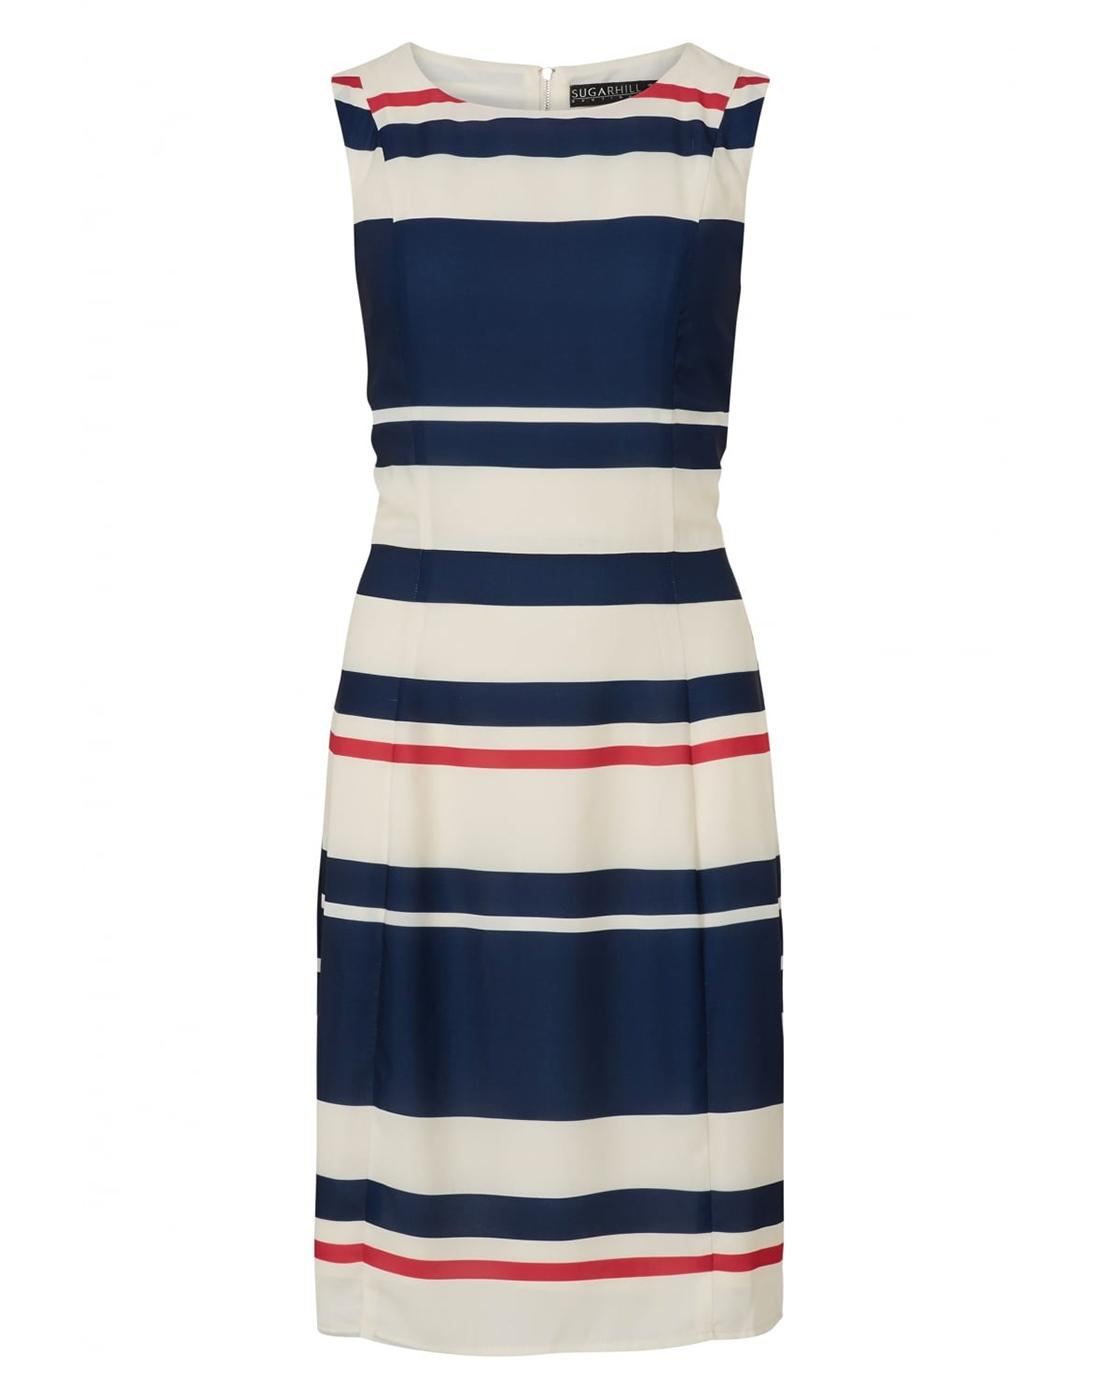 Eliza SUGARHILL BOUTIQUE Retro Striped Shift Dress